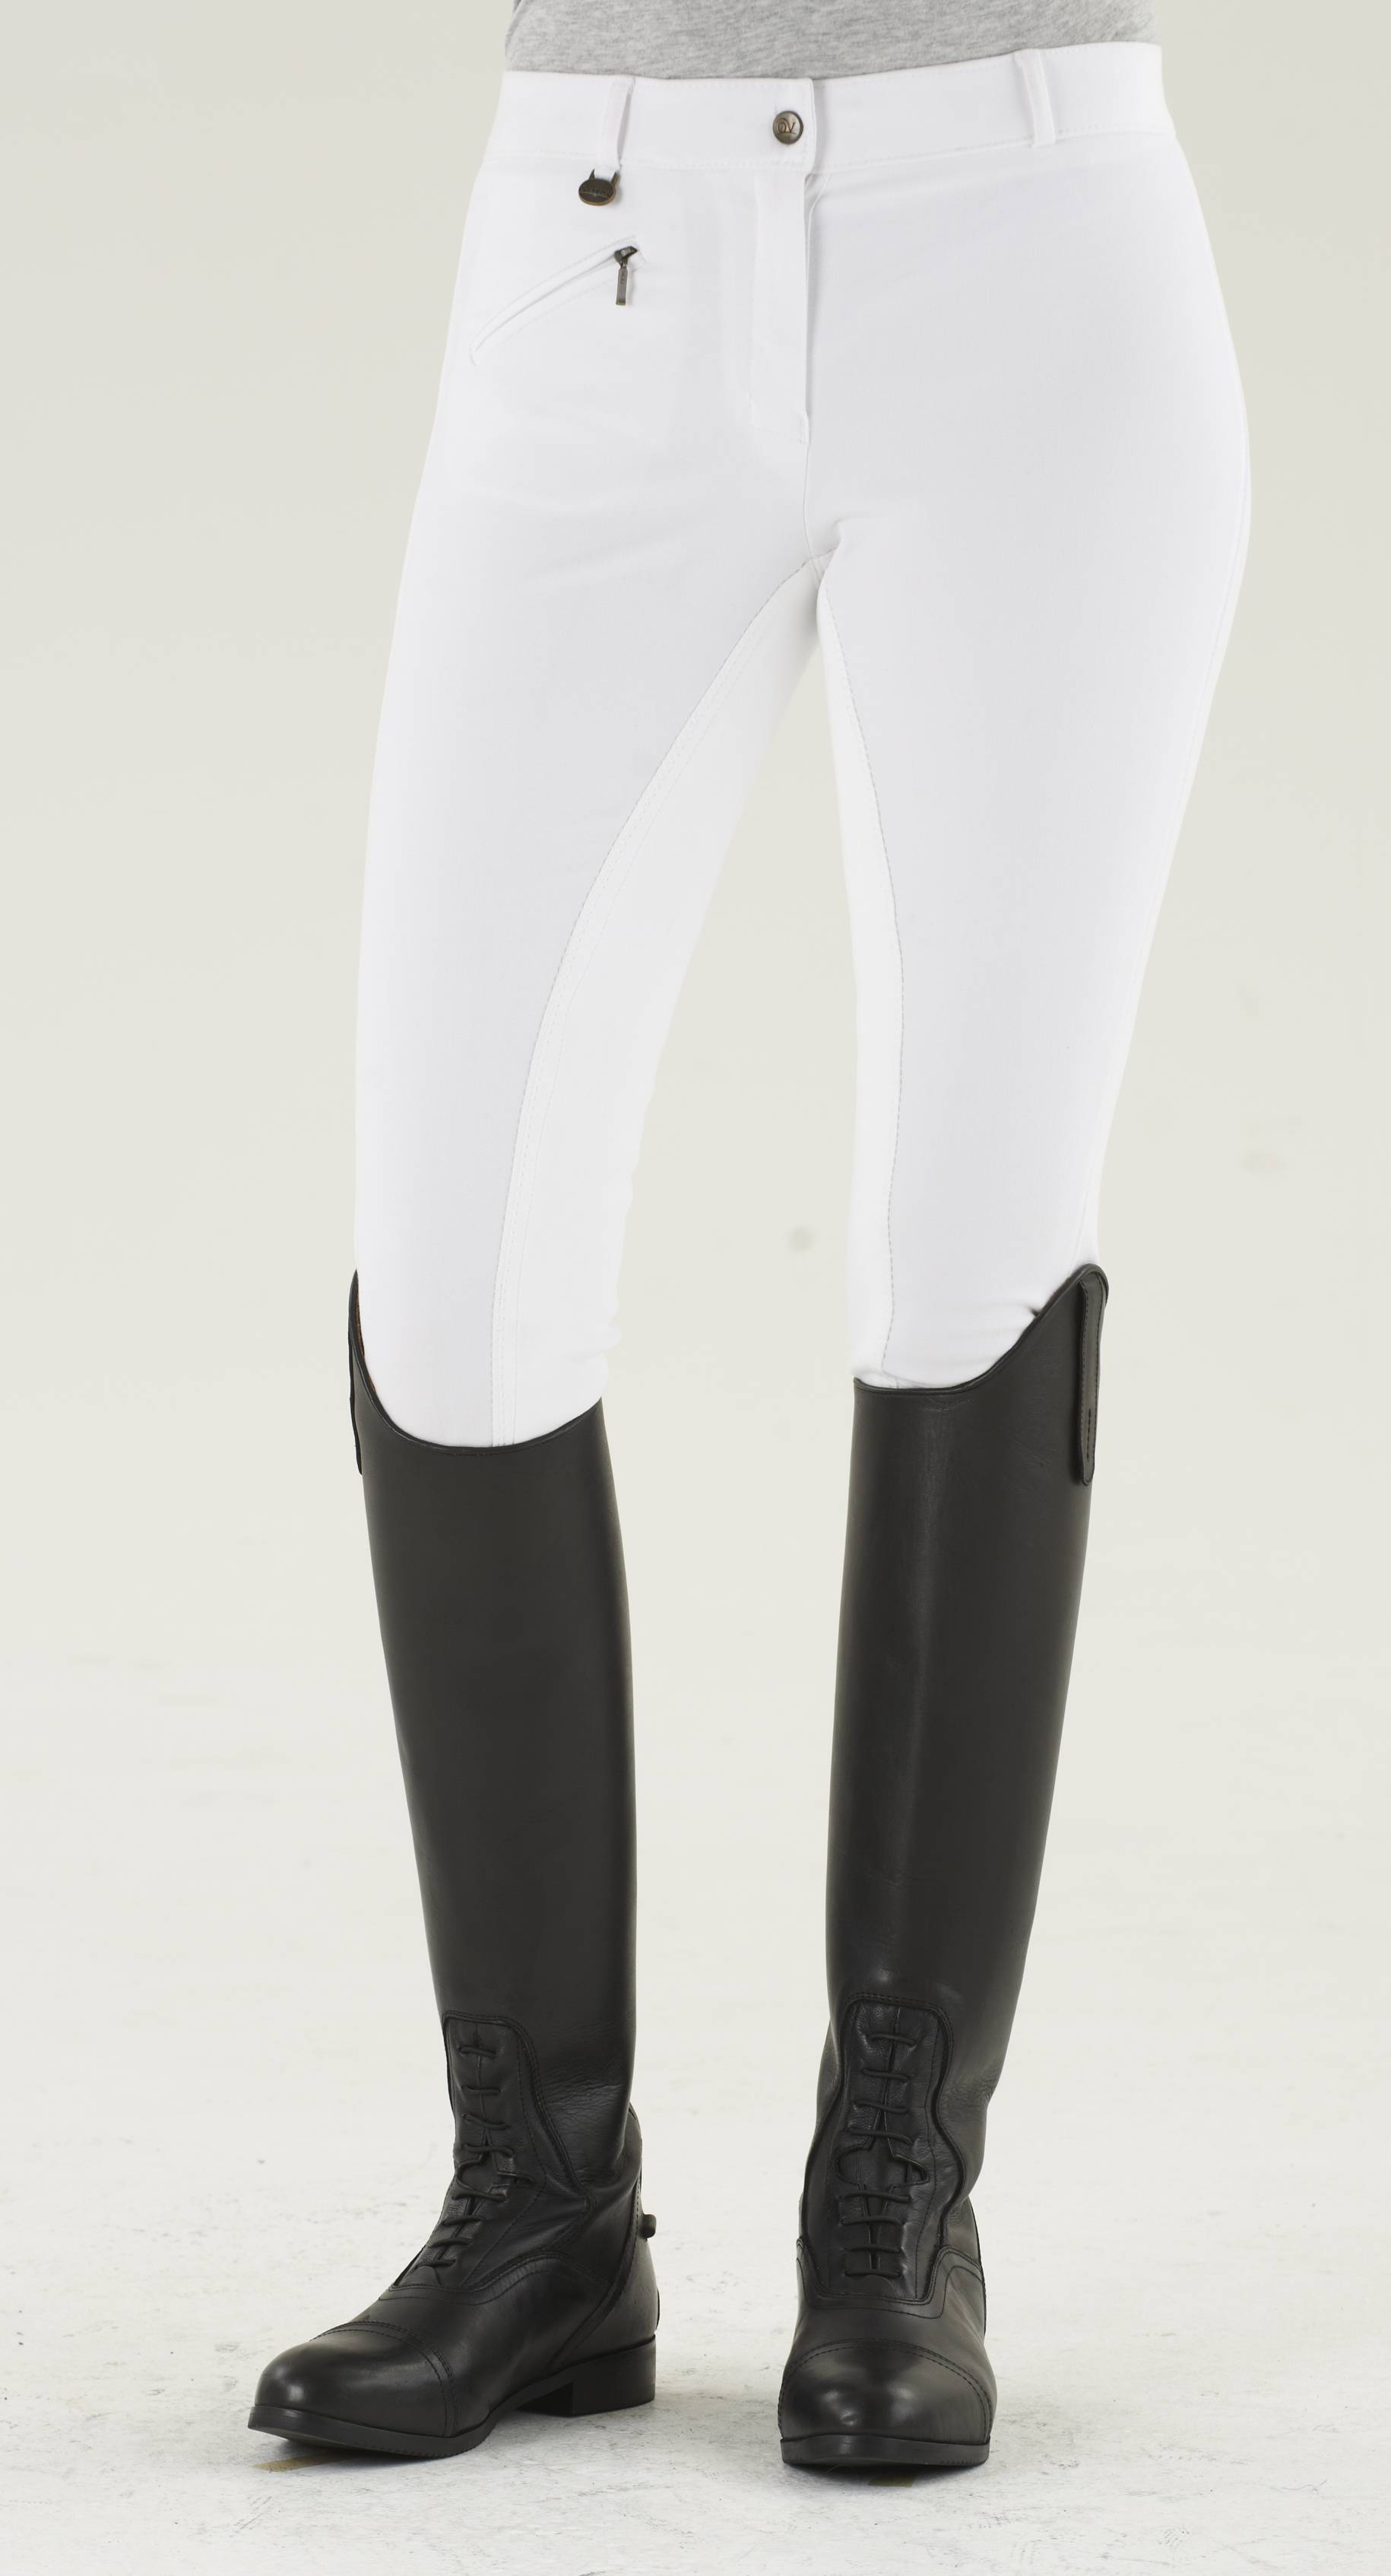 Ovation Ladies EuroWeave DX Full Seat Riding Breeches